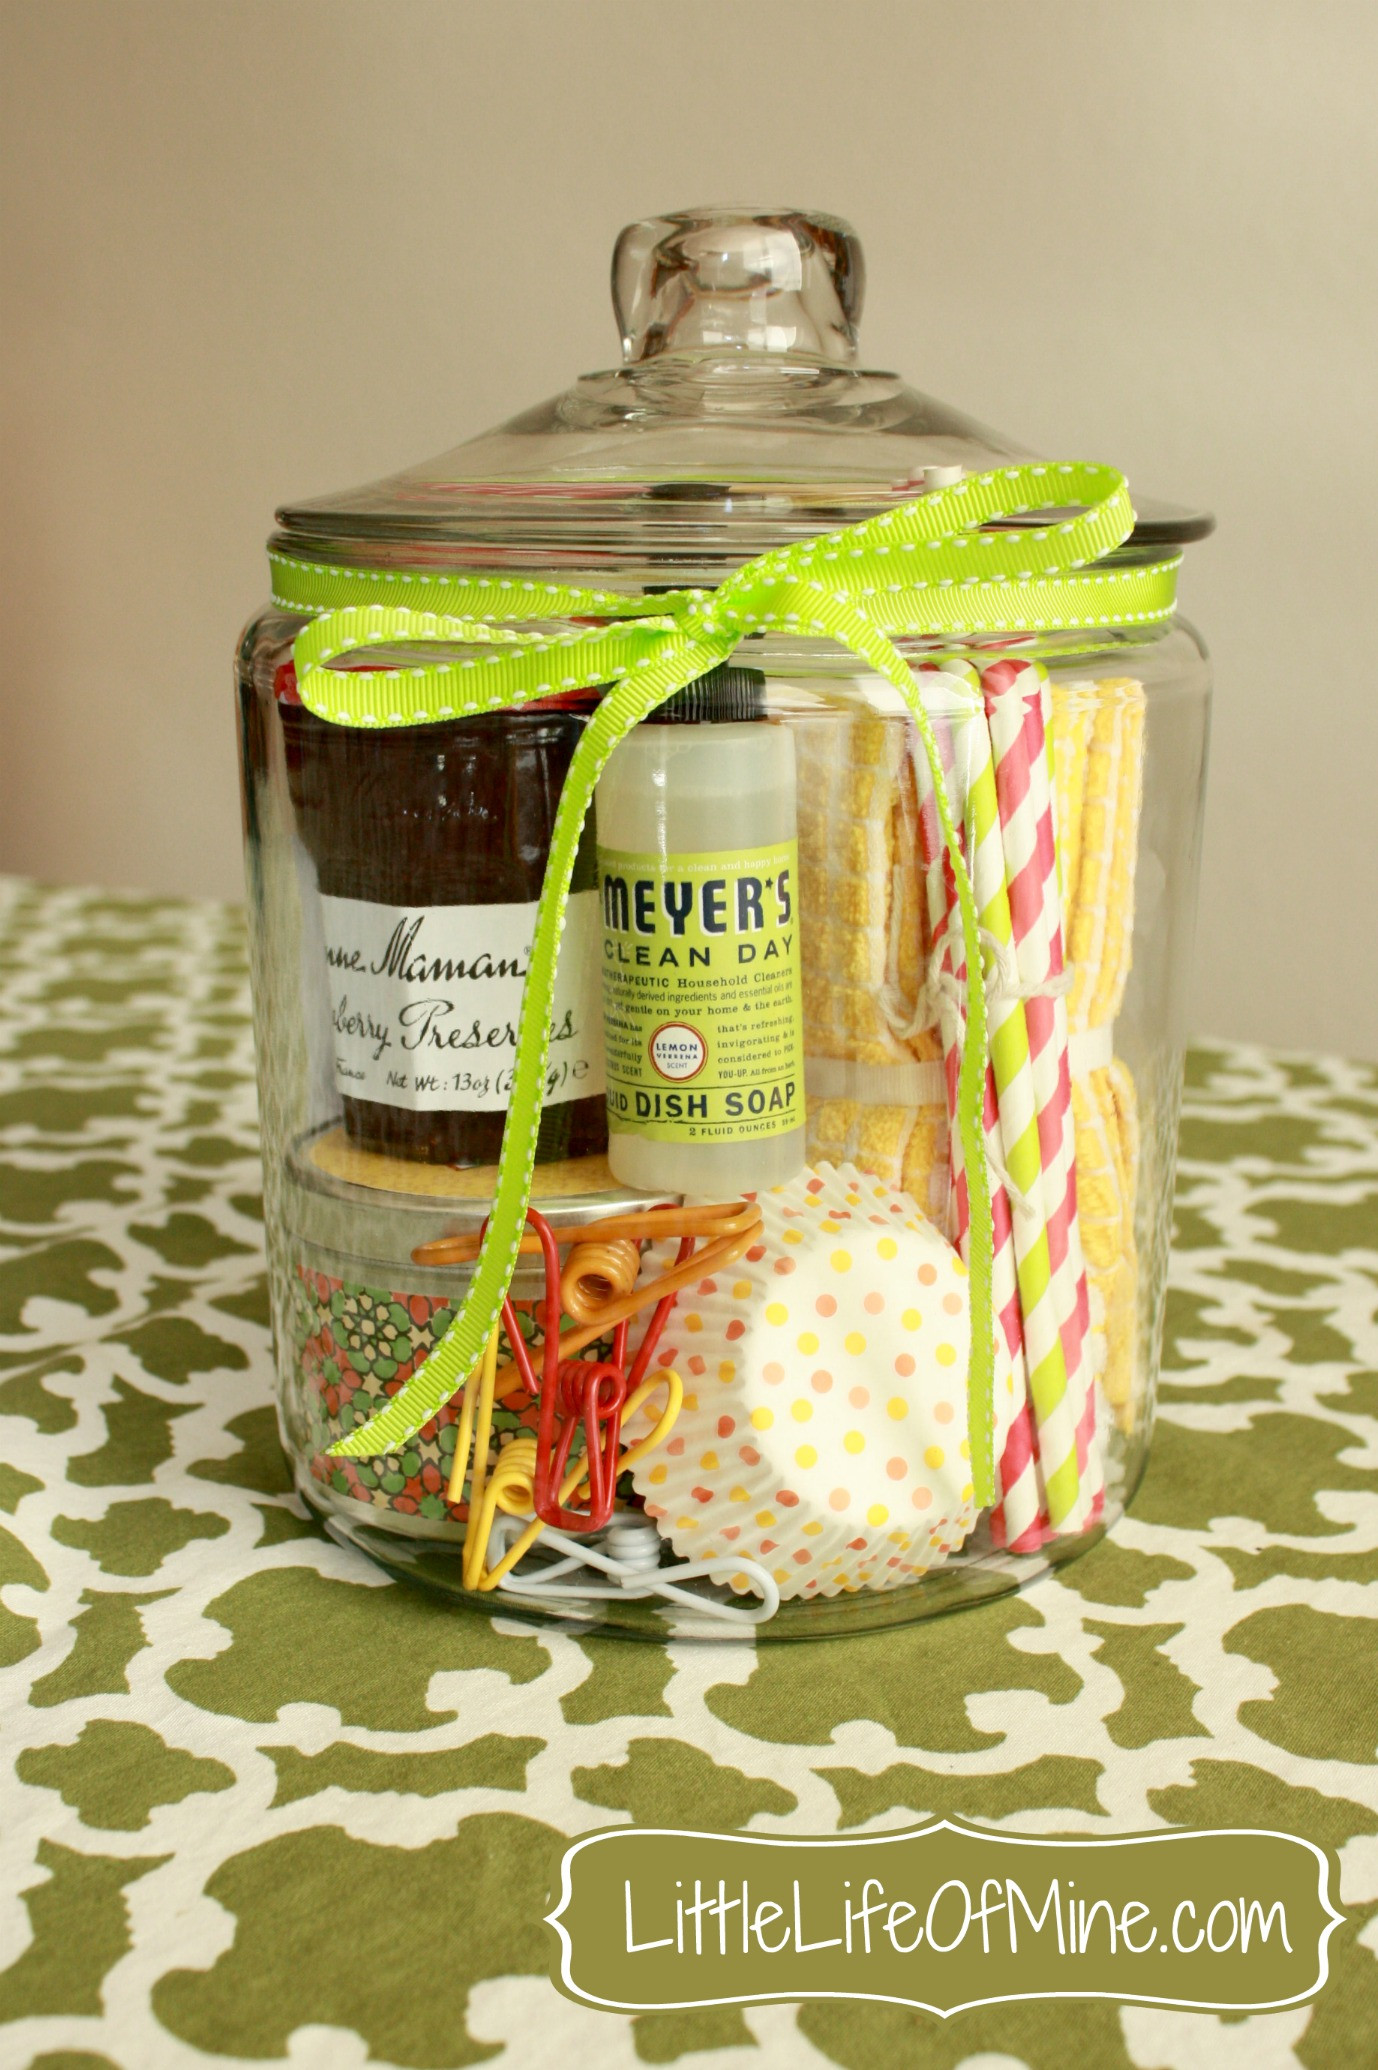 Best ideas about Good Housewarming Gift Ideas . Save or Pin Housewarming Gift in a Jar littlelifeofmine Now.